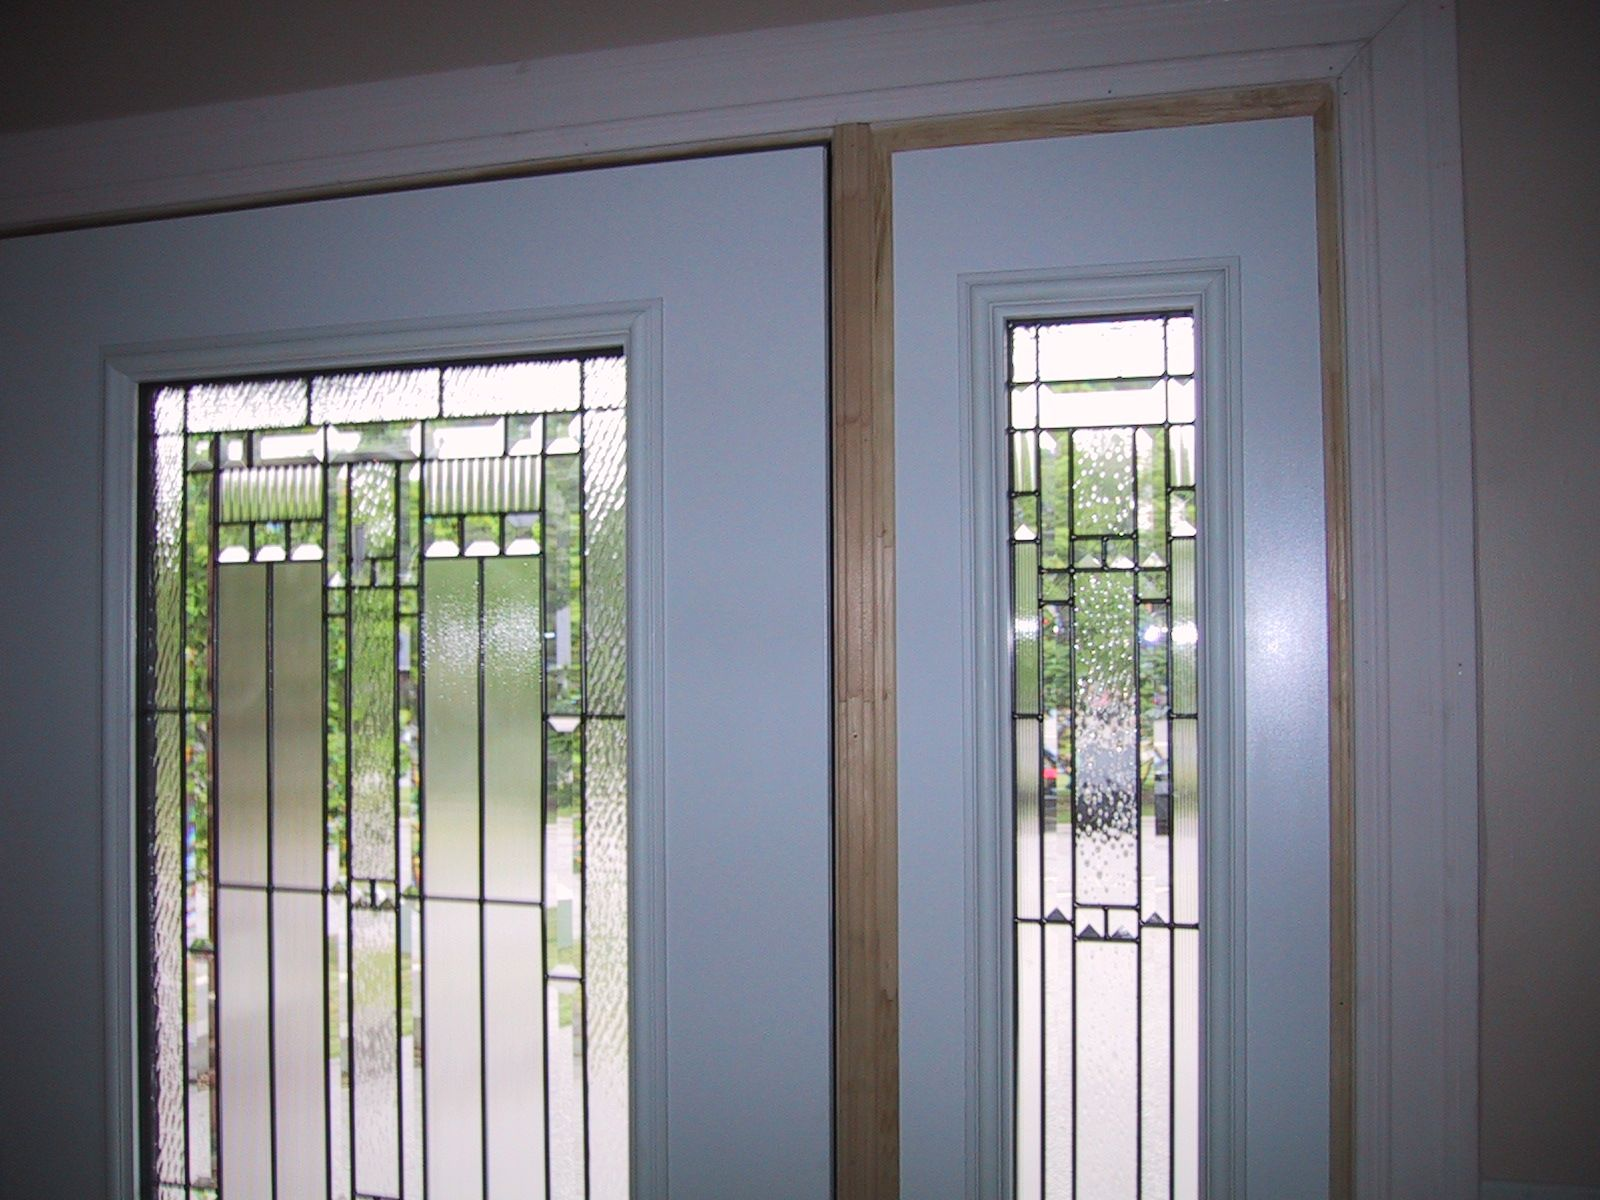 Exterior door glass inserts the glass inserts where you cannot exterior door glass inserts the glass inserts where you cannot see any plastic plugs eventelaan Gallery